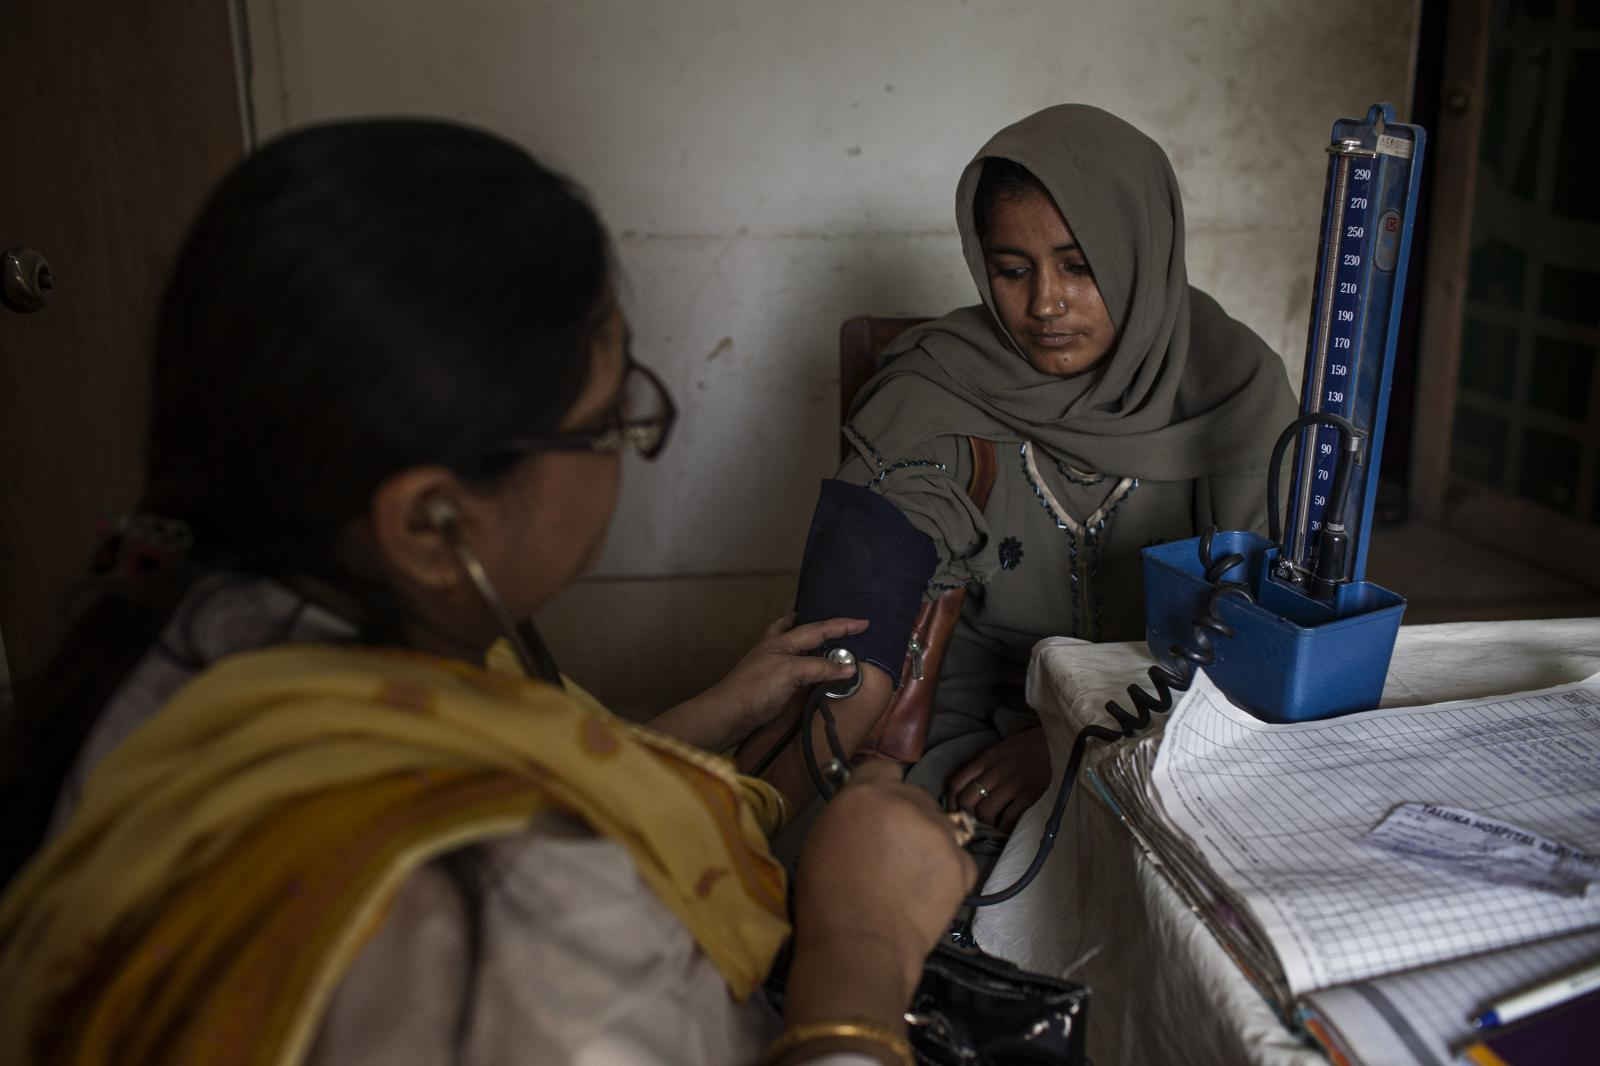 A doctor checks the blood pressure at the Karam Ali Lagariha Hospital, located in Hyderabad province. Poor living conditions, exposure to the cold and lack of access to appropriate hygiene measures are among key factors resulting in thousands of people suffering from acute respiratory infections. Diego Ibarra Sánchez for WHO